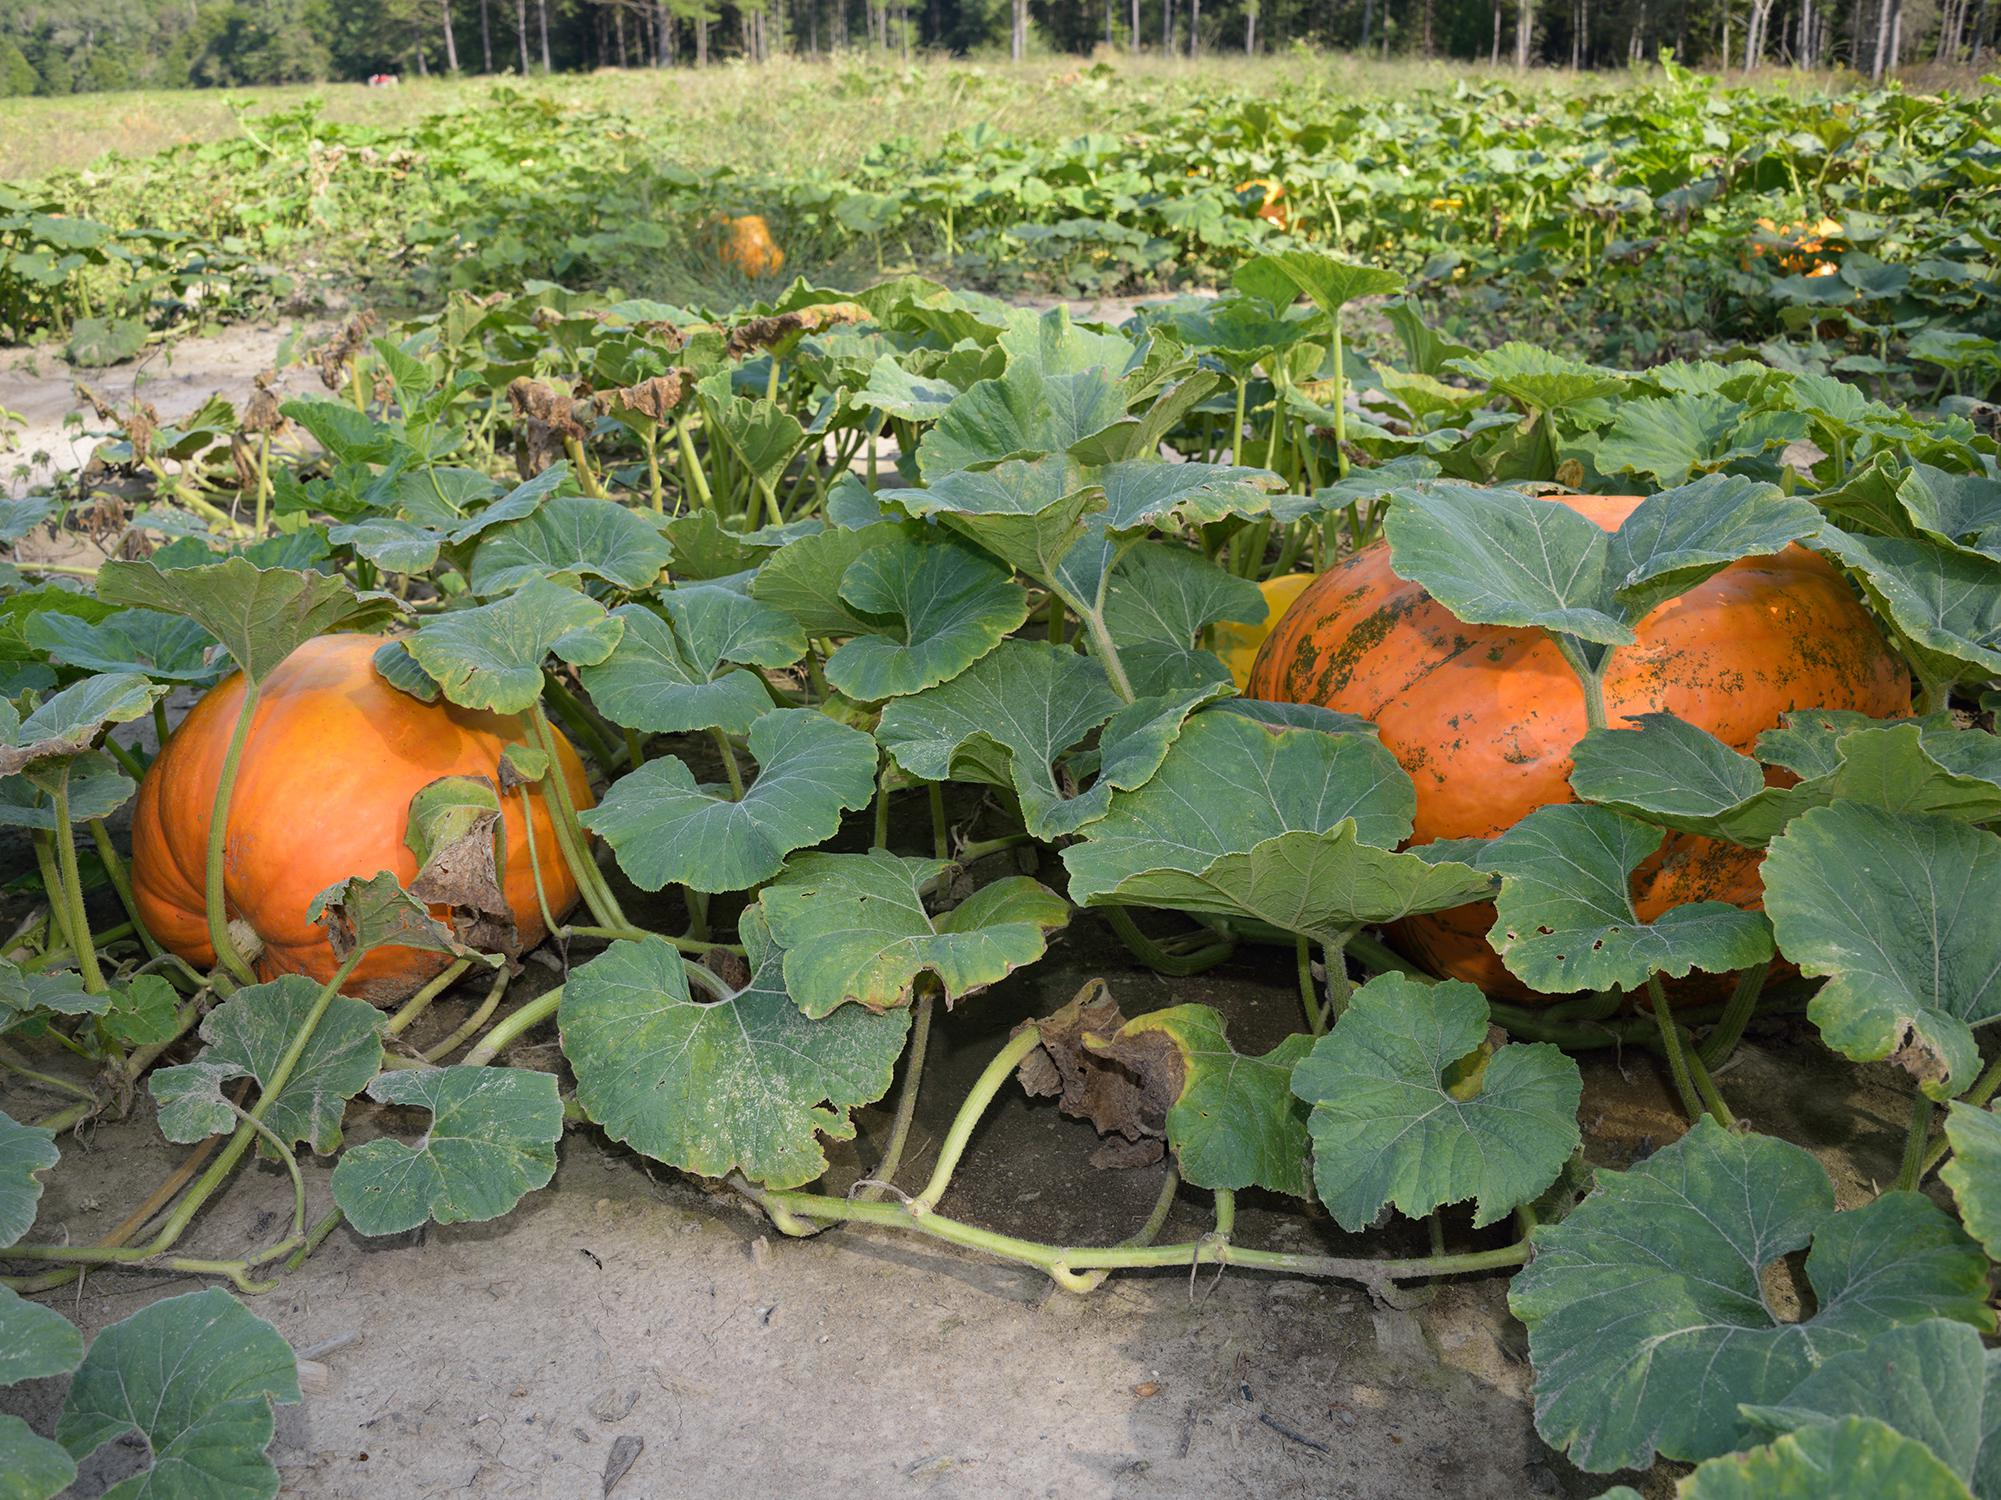 Two large, orange pumpkins grow on the vine in the foreground, with others visible in the background.